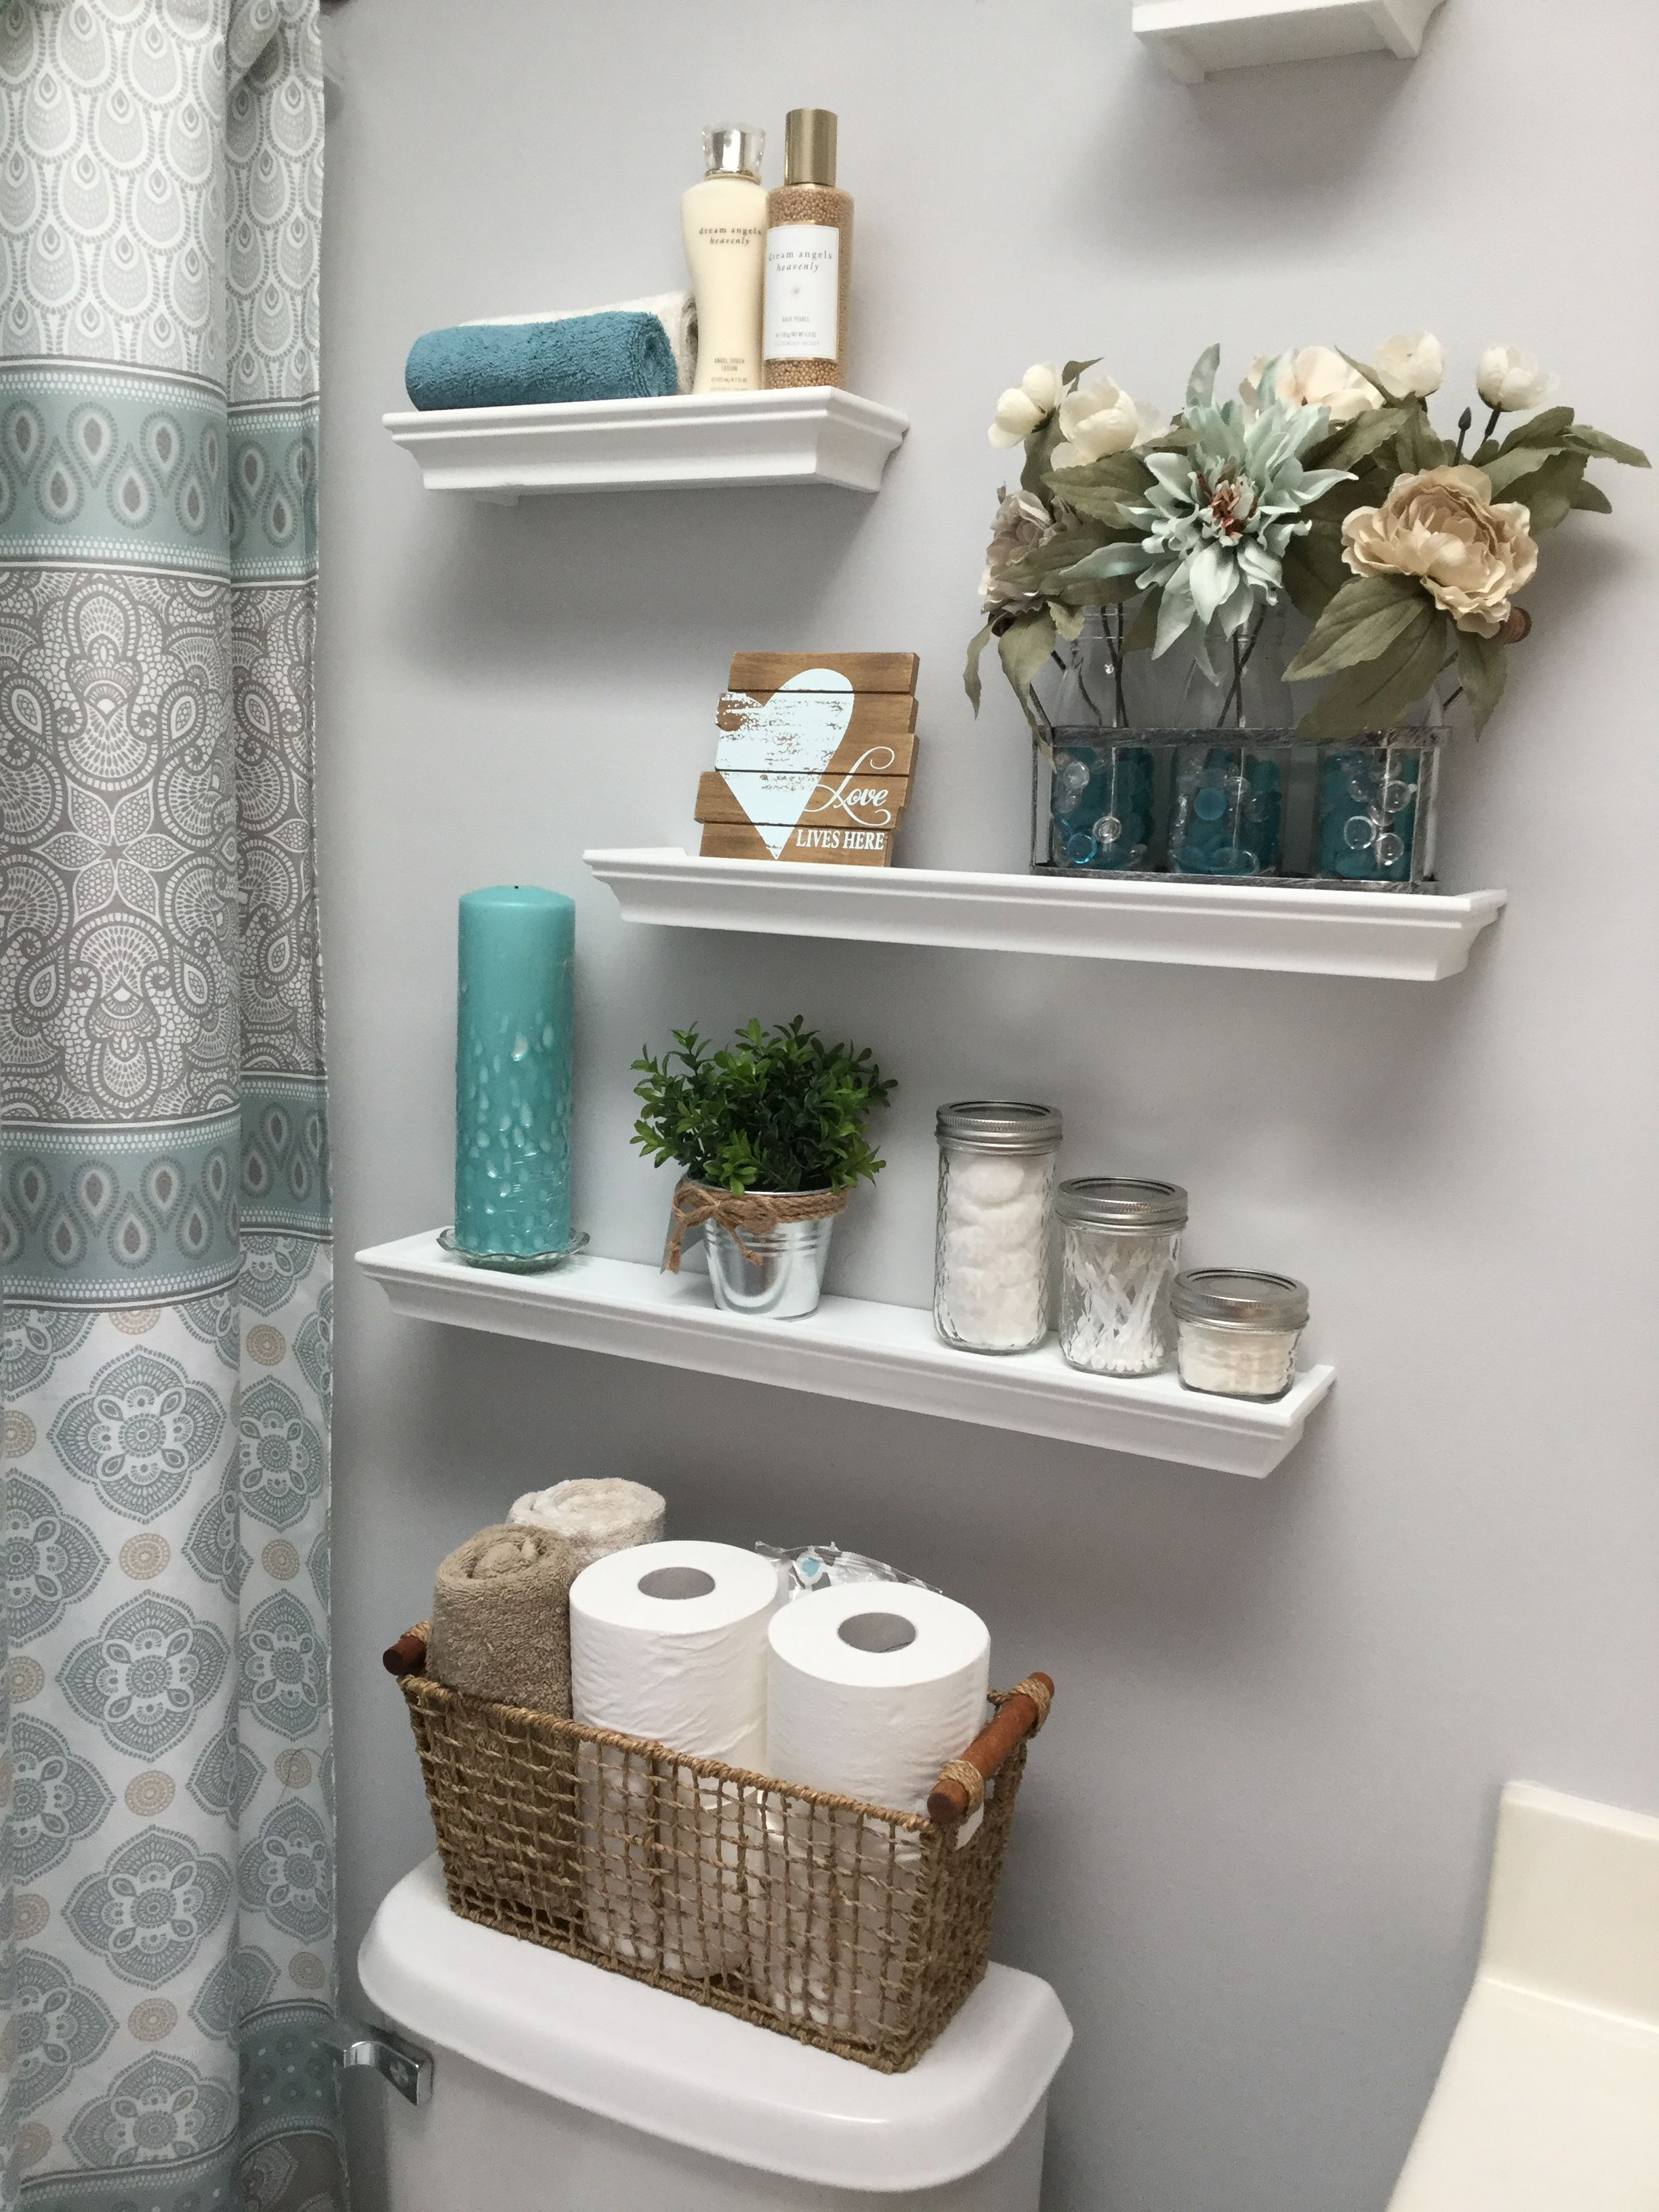 8 Bathroom Floating Shelves Design To Save Room Restroom Decor